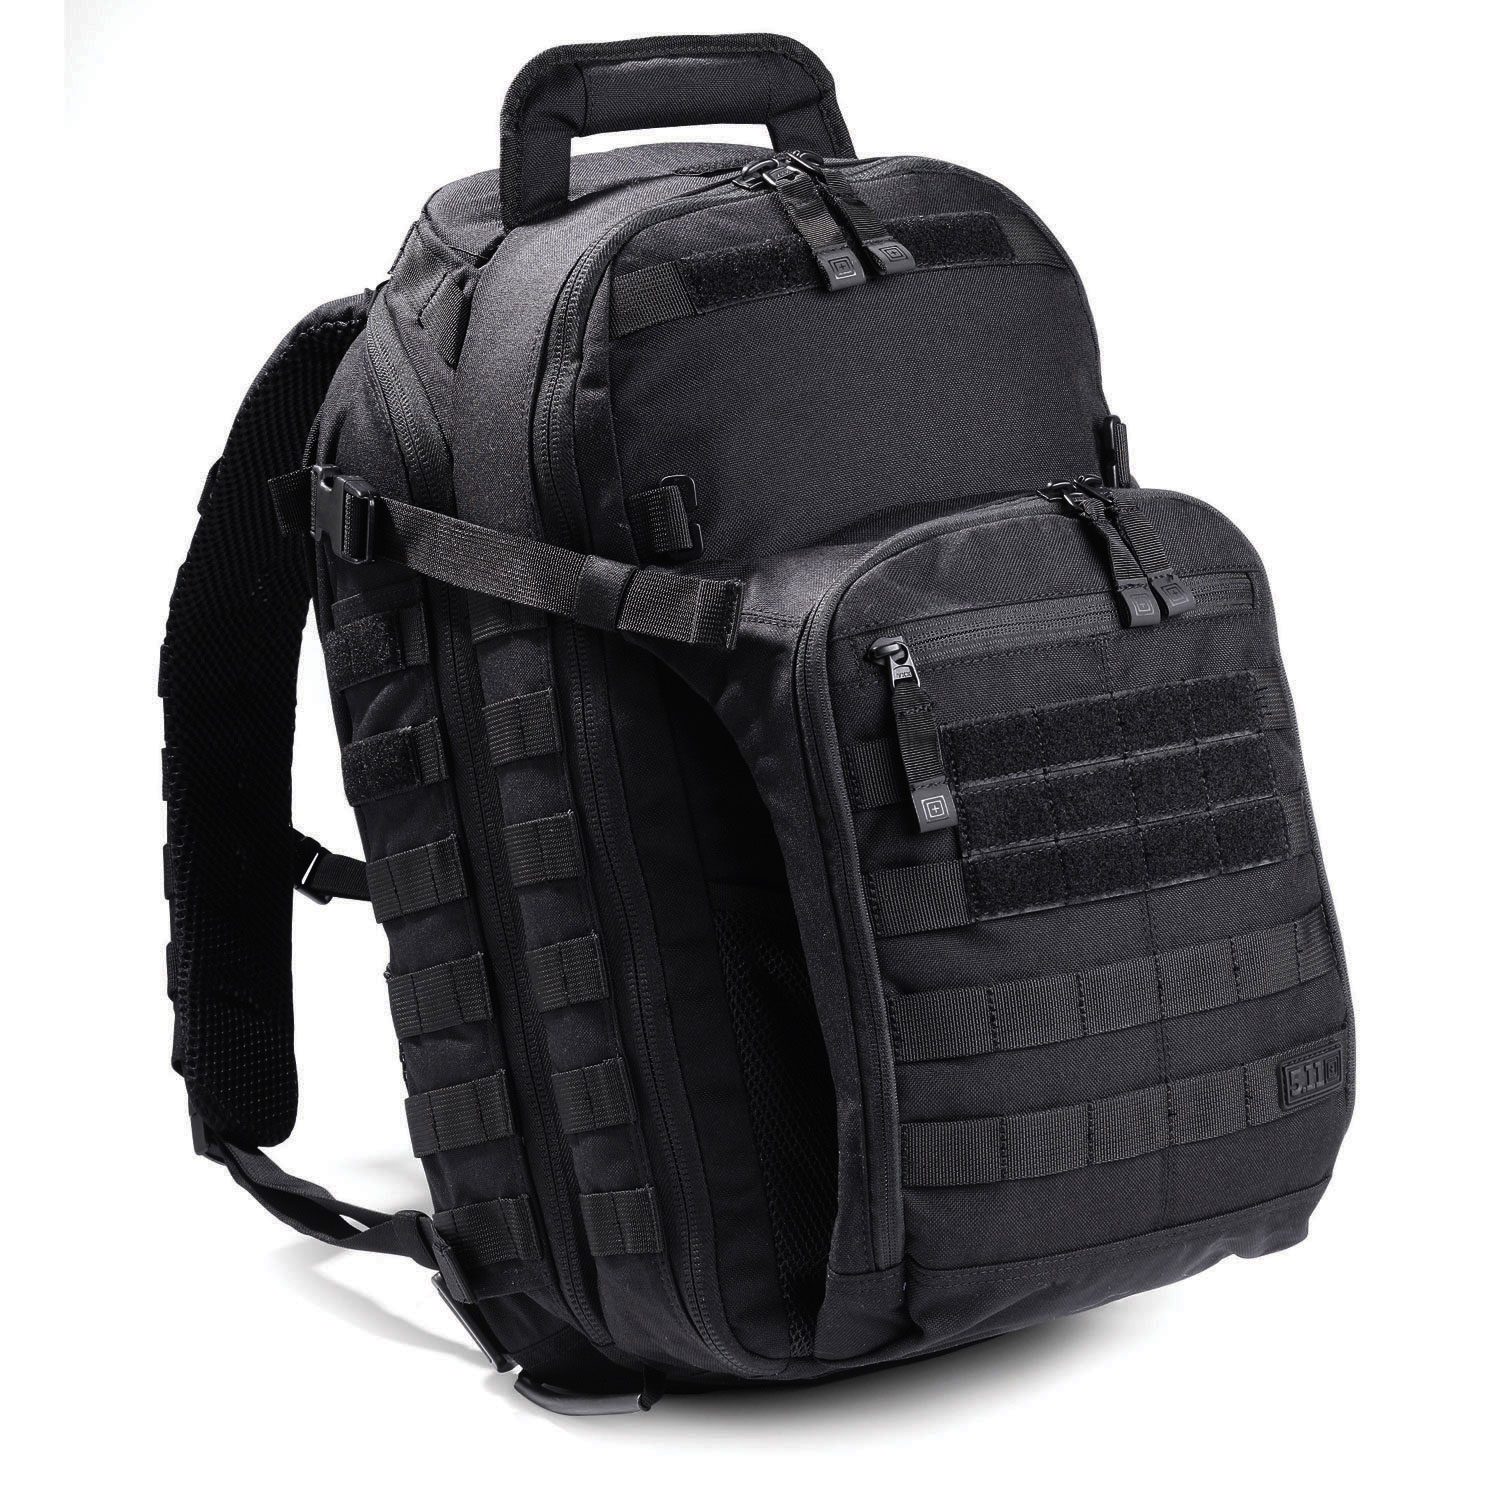 8284bcd3b67 5.11 Tactical All Hazards Prime Backpack